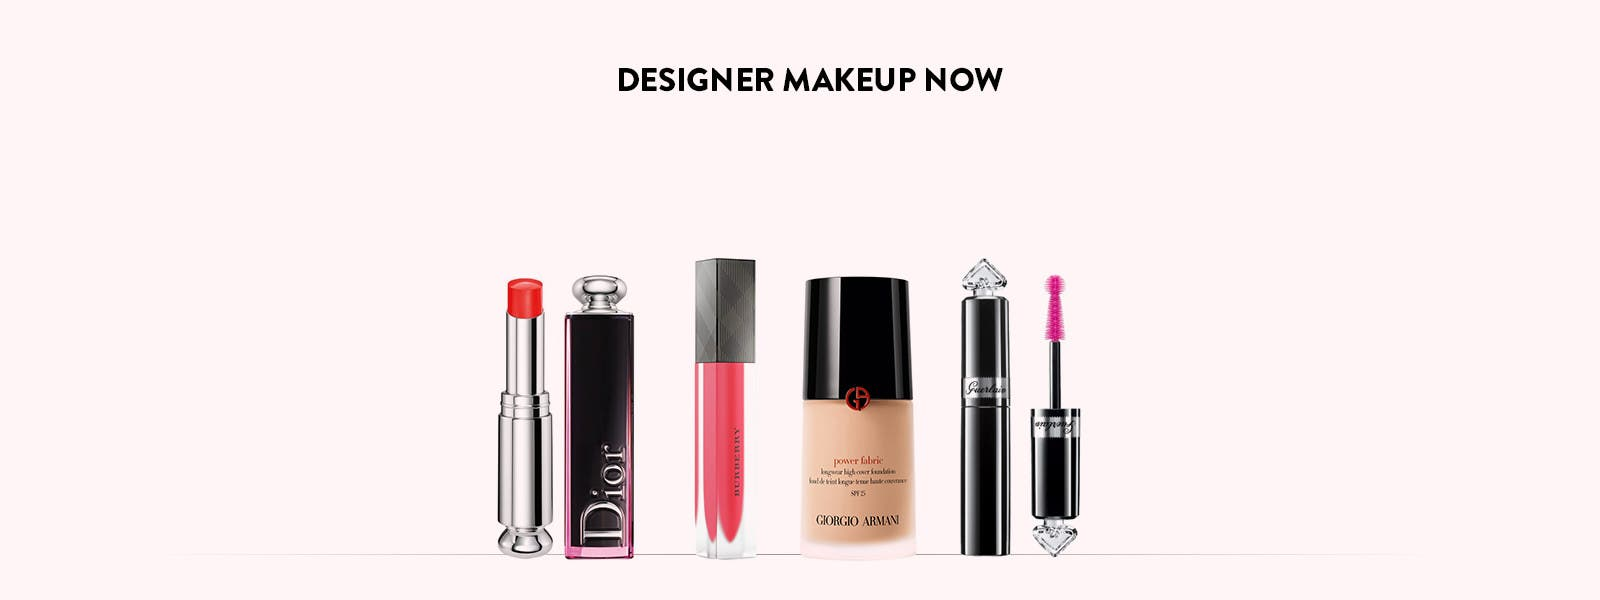 Designer makeup now.